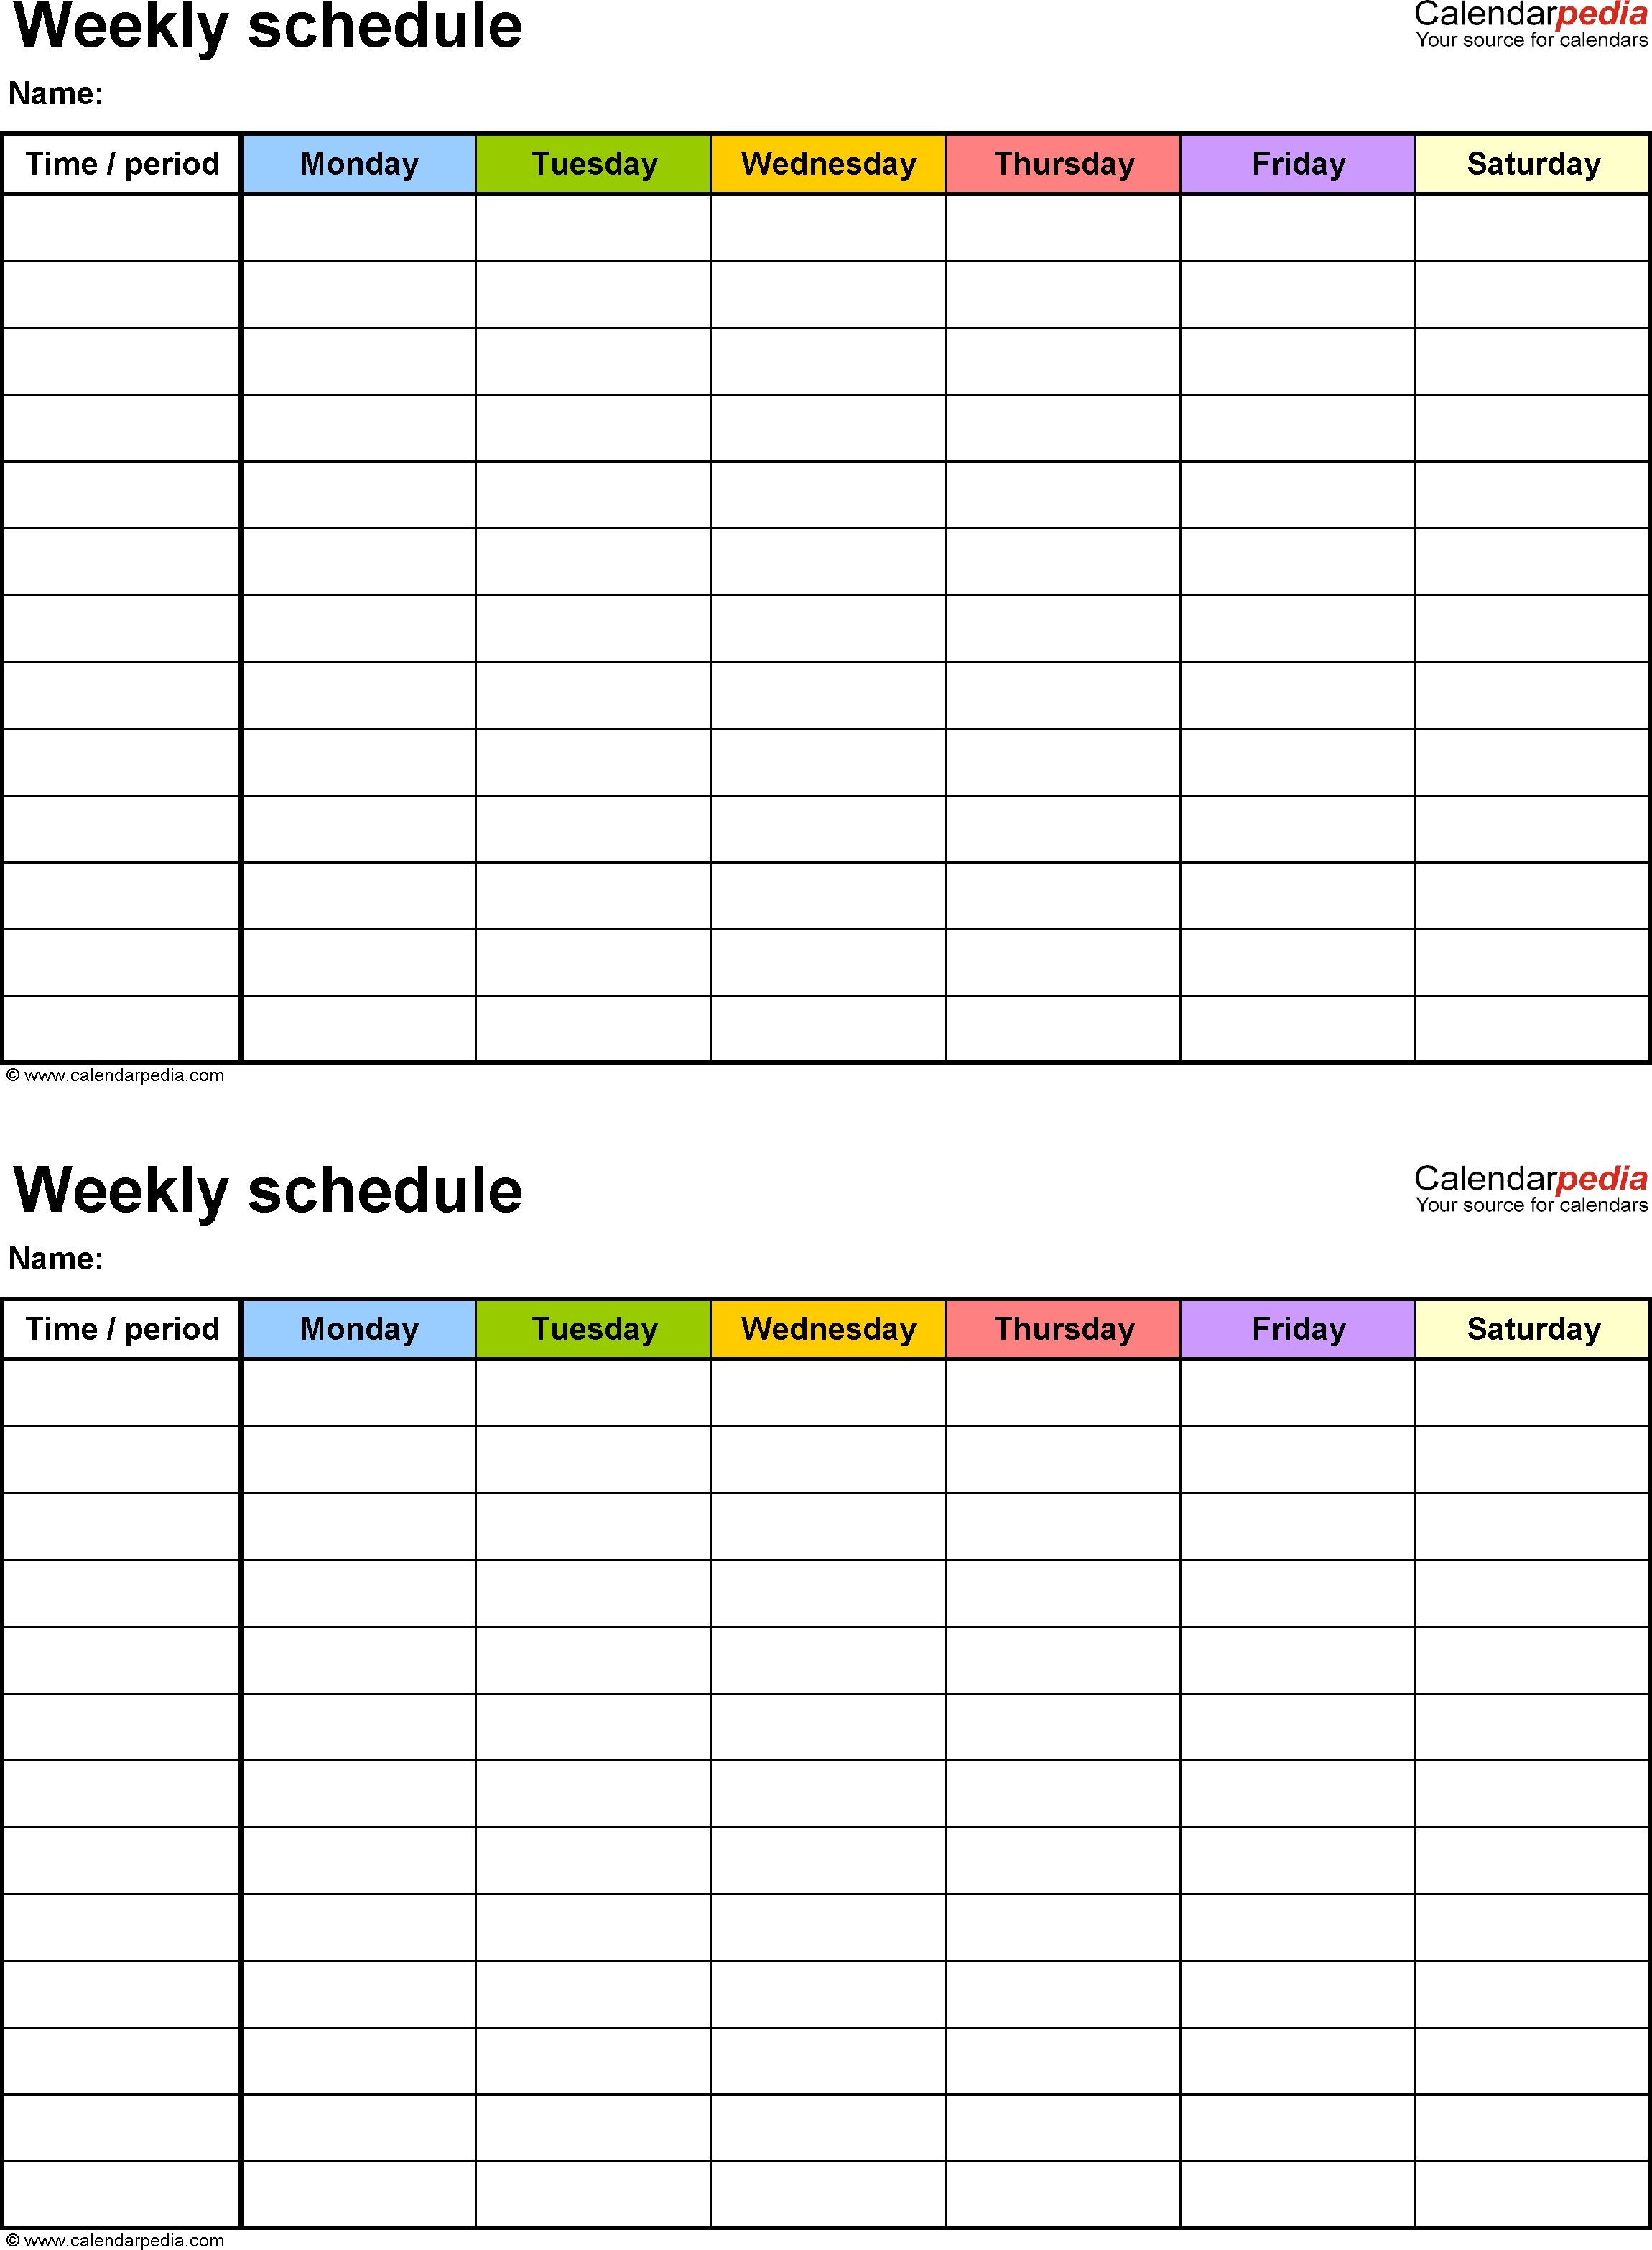 Free Weekly Schedule Templates For Word - 18 Templates intended for Blank Days Of The Week Calendar